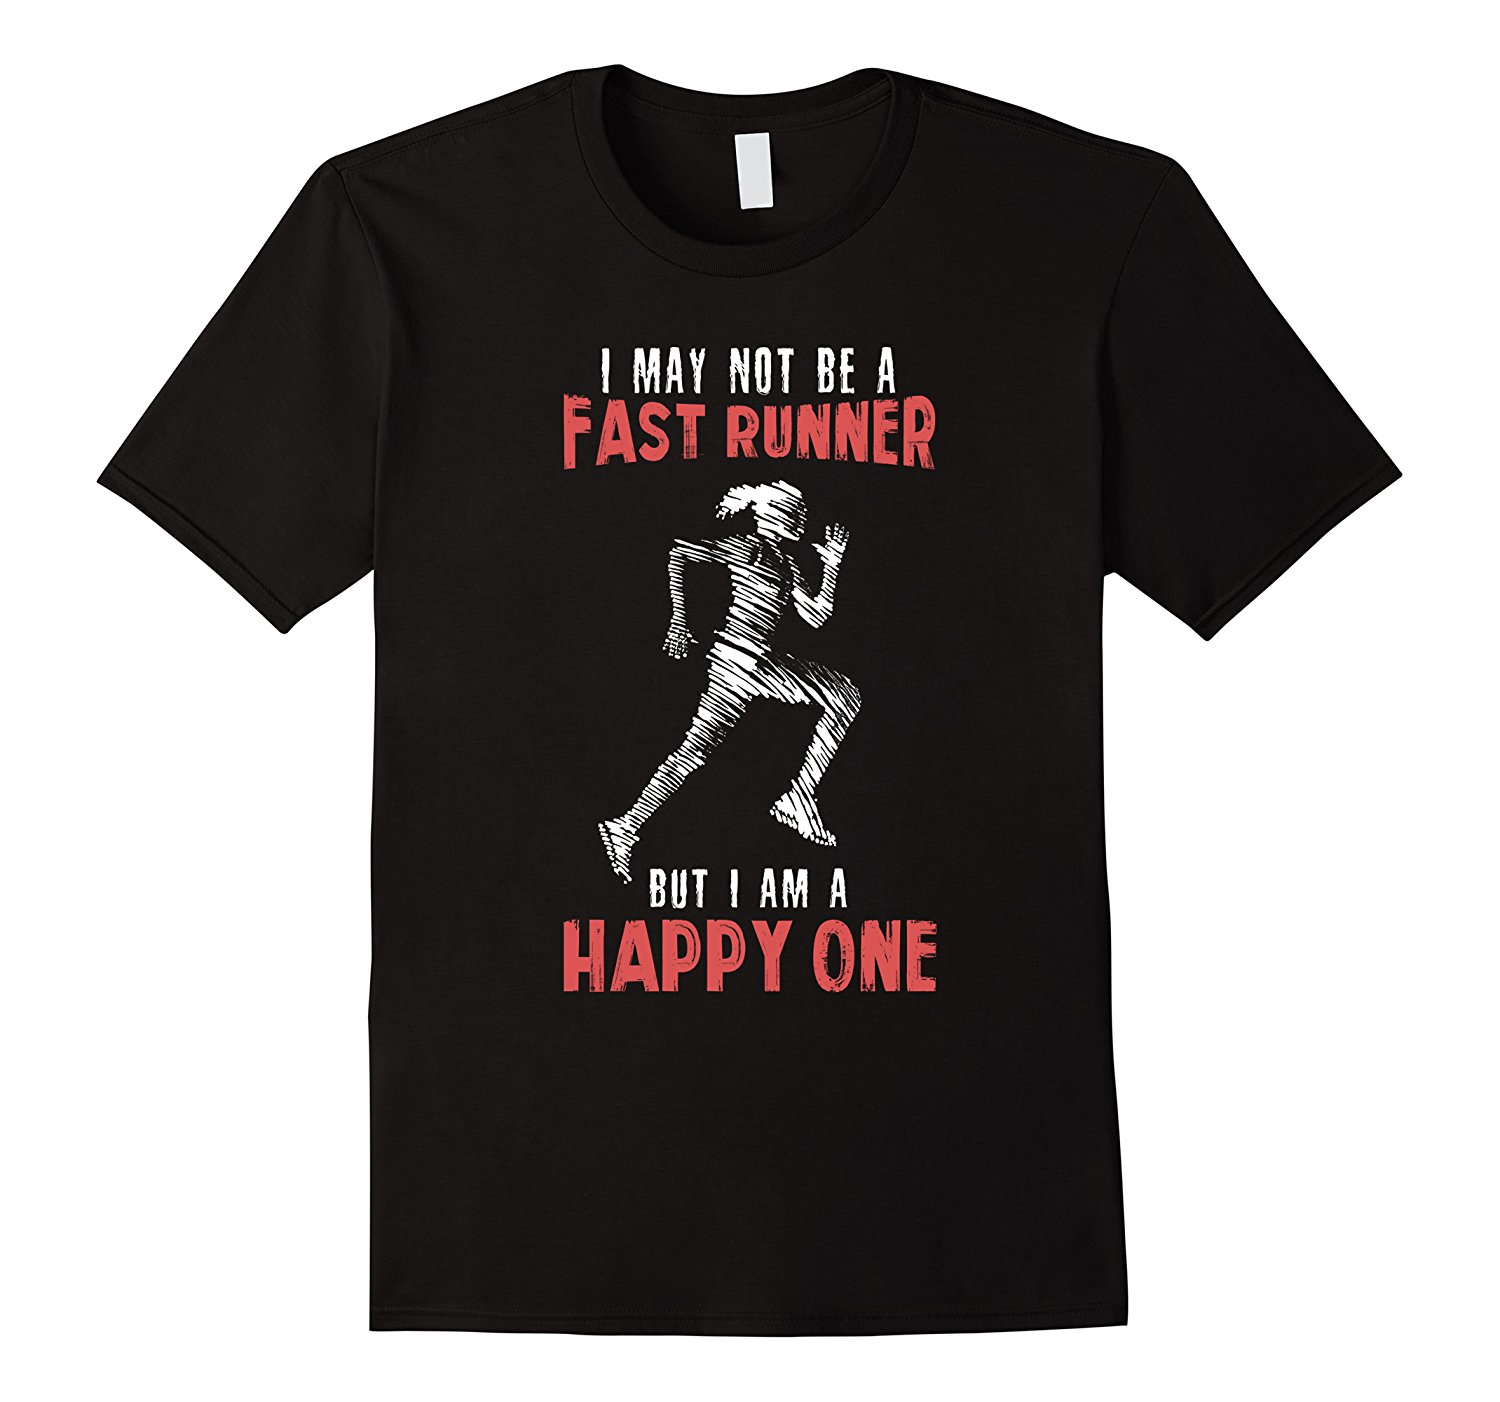 Lifestyle Motivation Tshirt May not be fast runner but happy